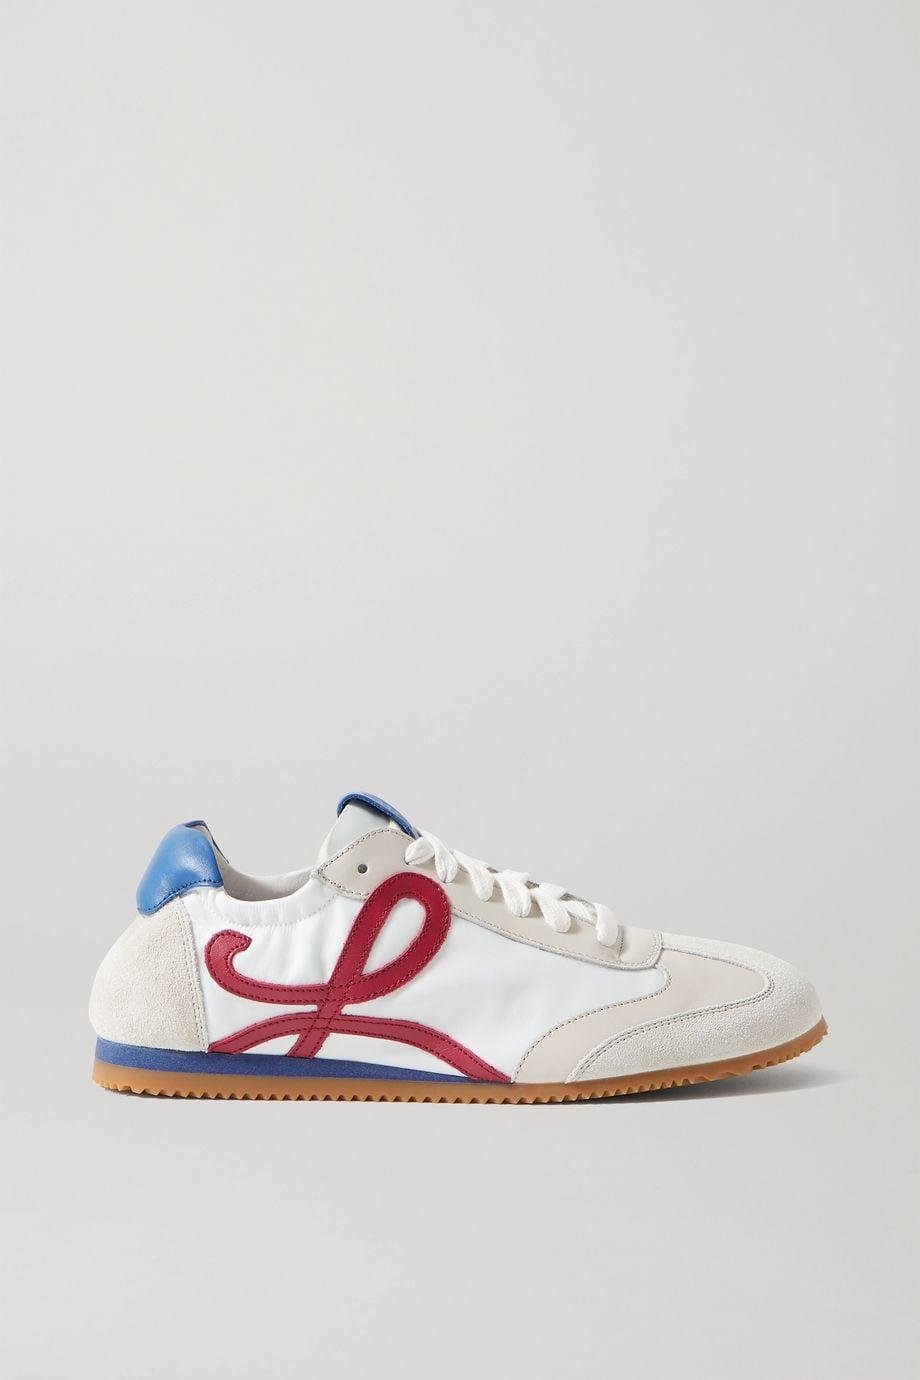 """<p><span>Loewe White Ballet Runner Shell</span> ($590)</p> <p>""""What can i say - they have my initial on them! These sneakers are an investment, but the quality and design can't be beat."""" - Lisa Sugar, president and founder, POPSUGAR</p>"""